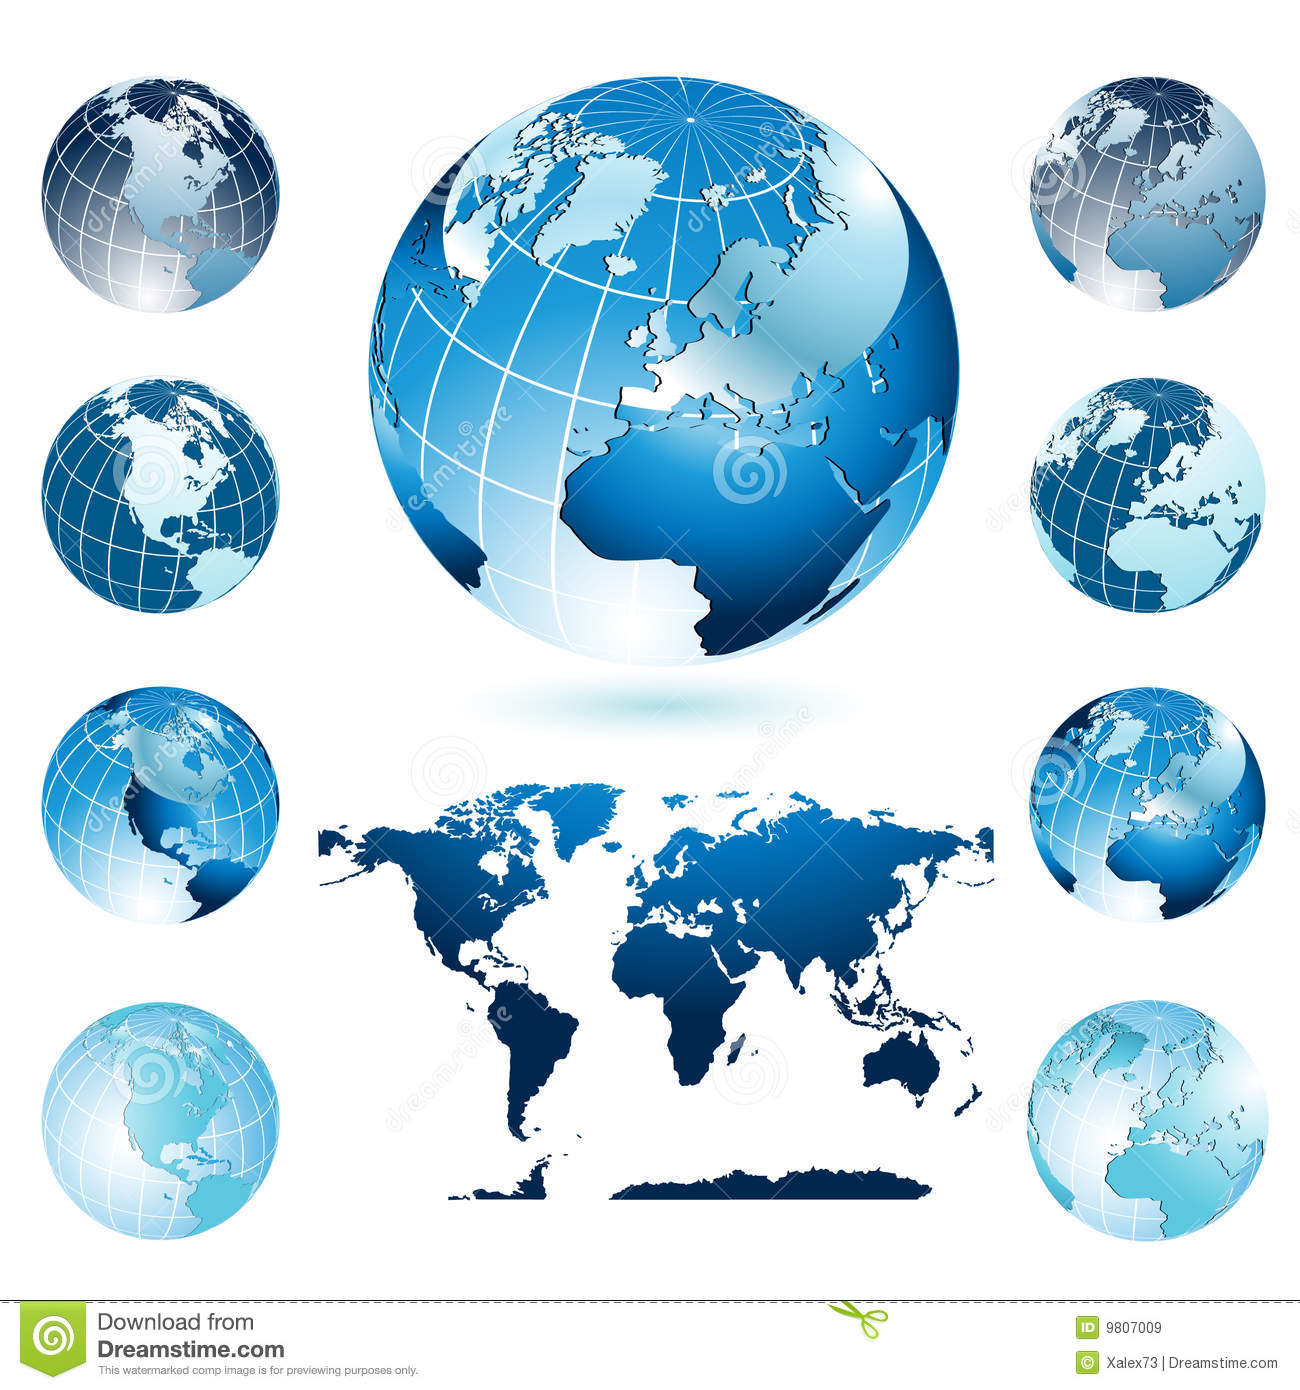 Globes and World Map